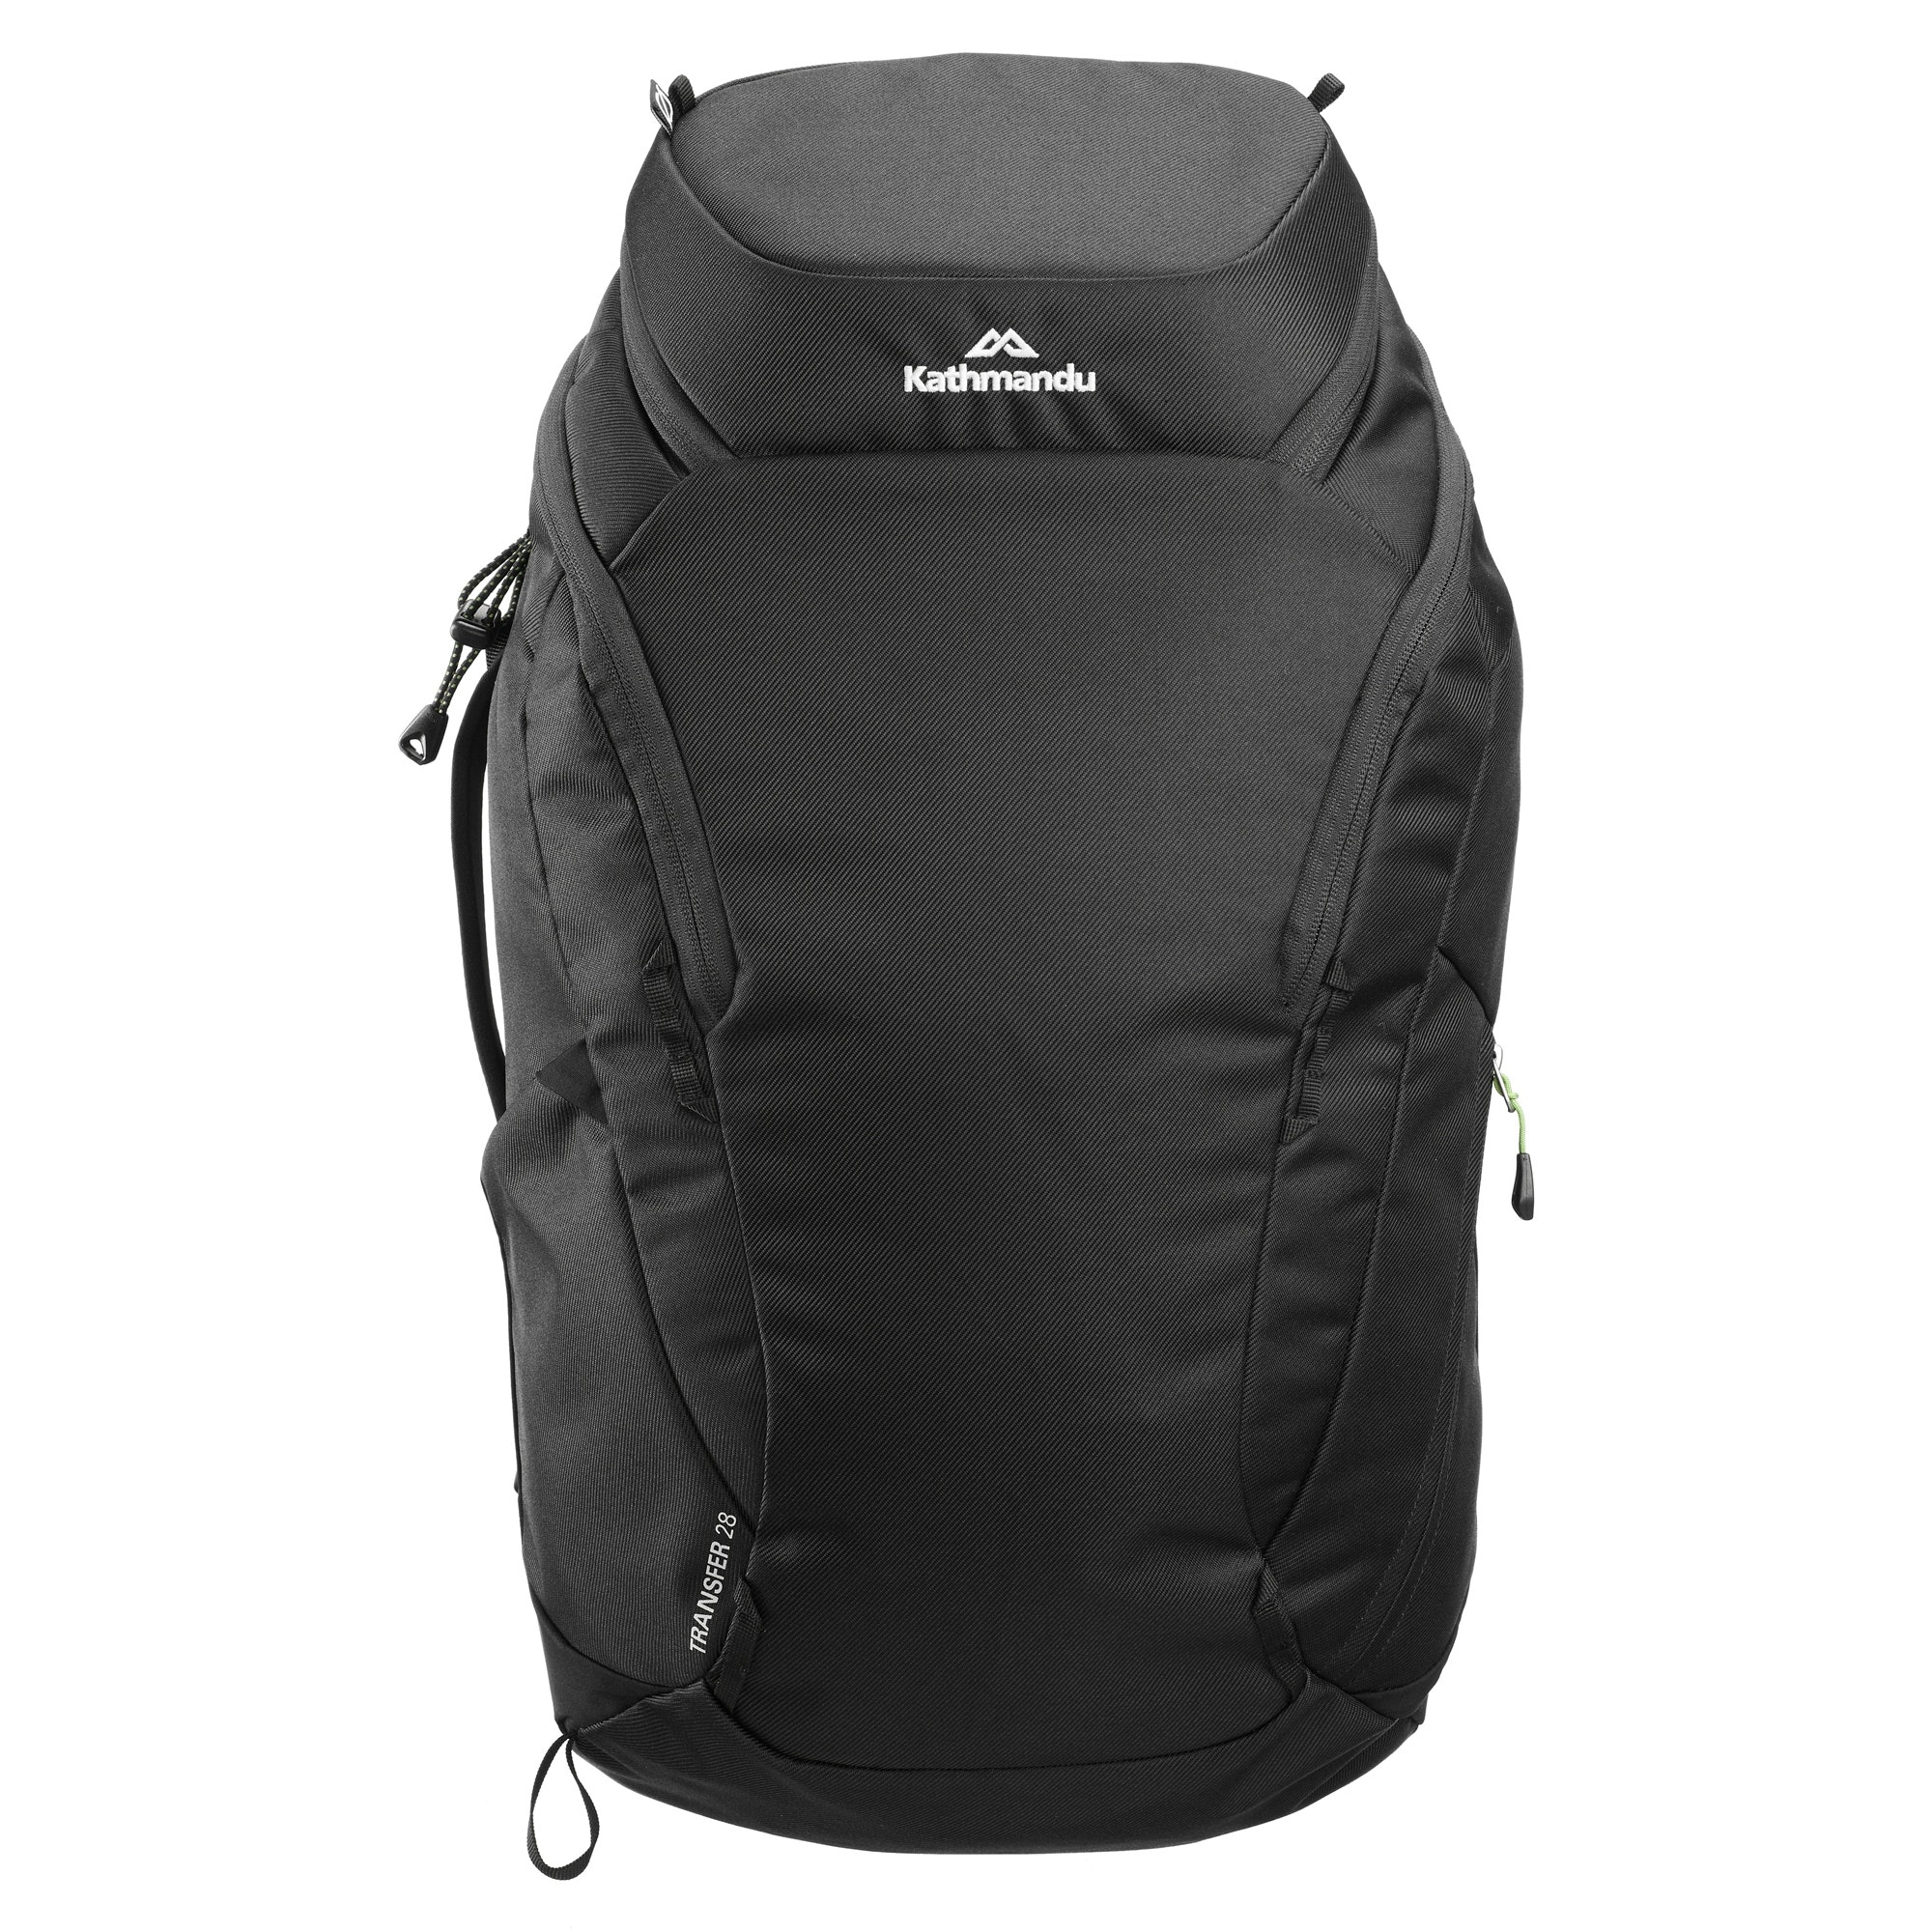 NEW-Kathmandu-Transfer-28L-Commuter-Bag-Laptop-Backpack-Rucksack-Travel-Pack-v3 thumbnail 7